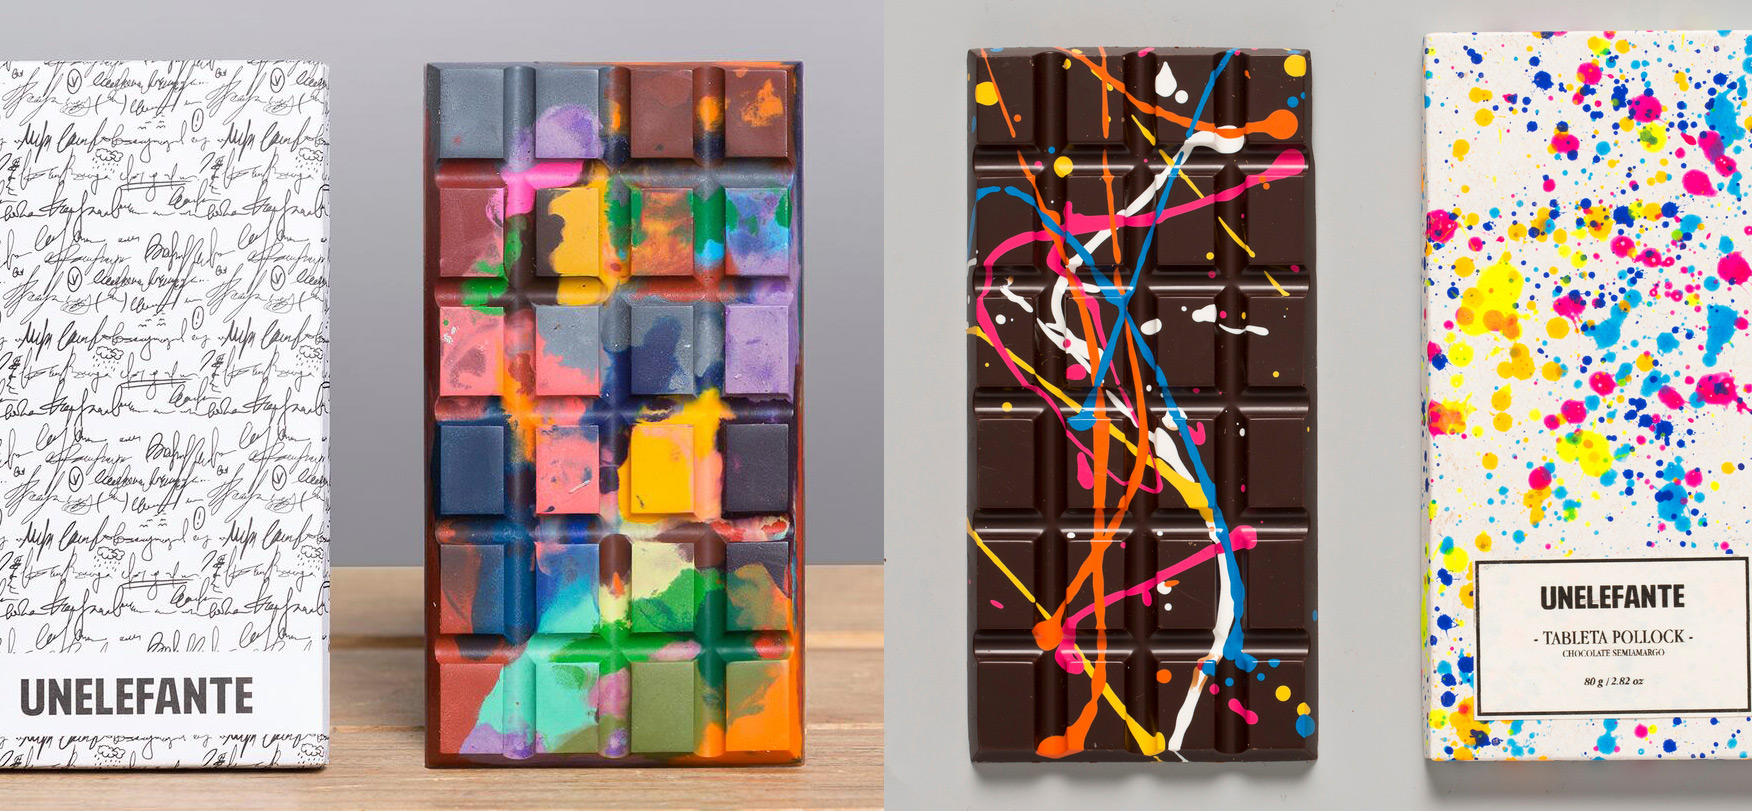 Edible Crayon and PaintSplattered Chocolate Bars by